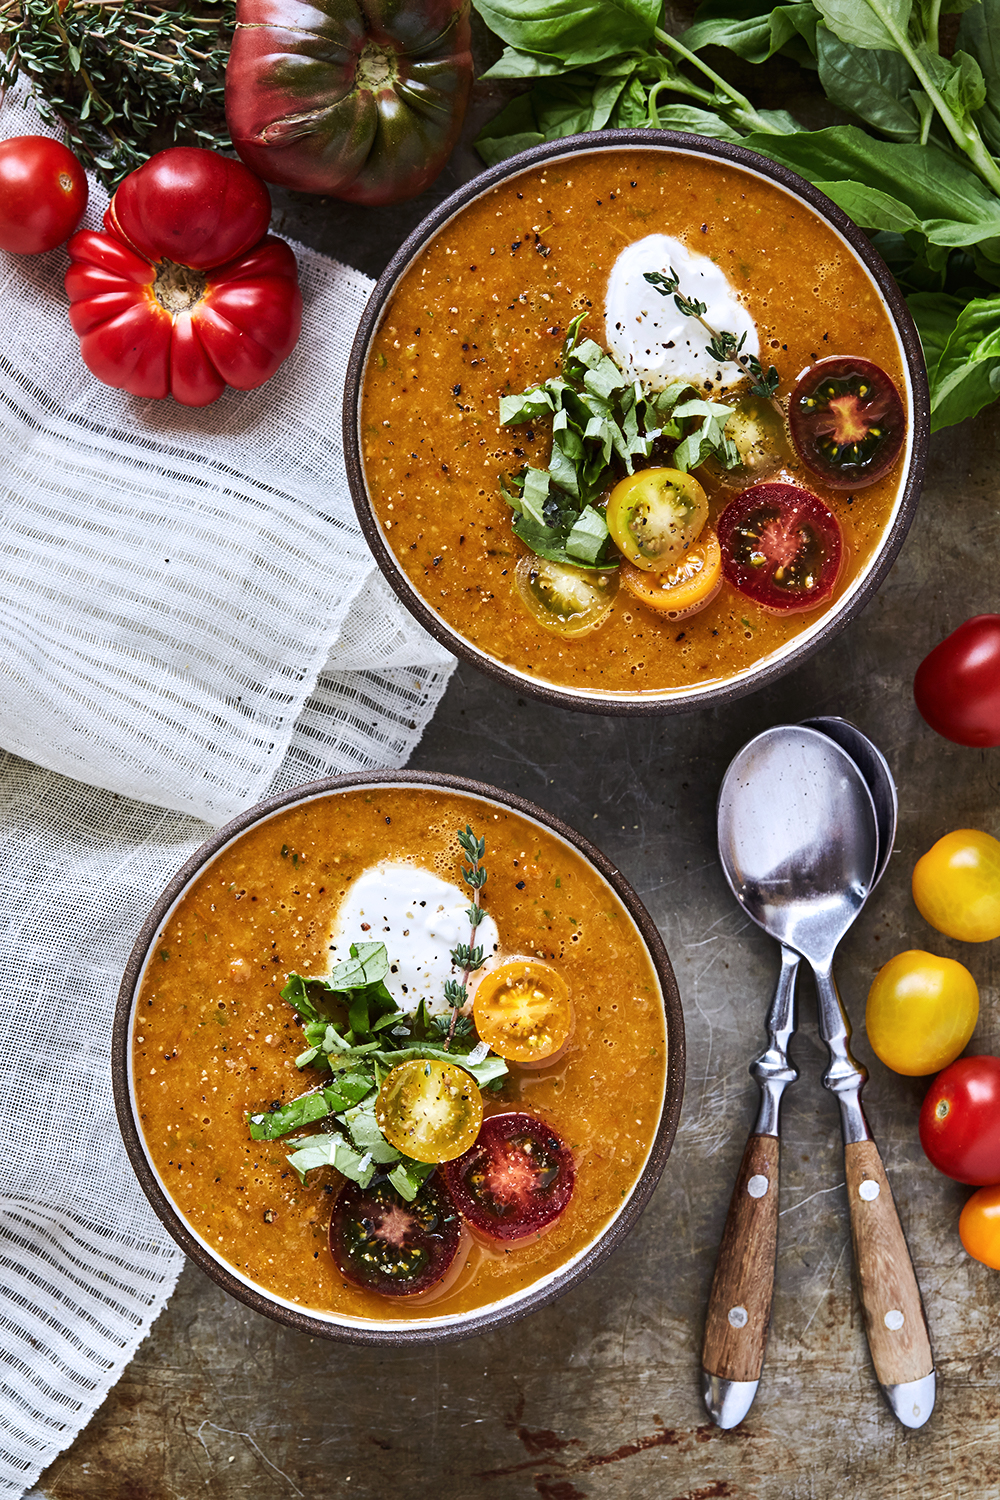 Chilled Roasted Heirloom Tomato Soup - Tasty Yummies